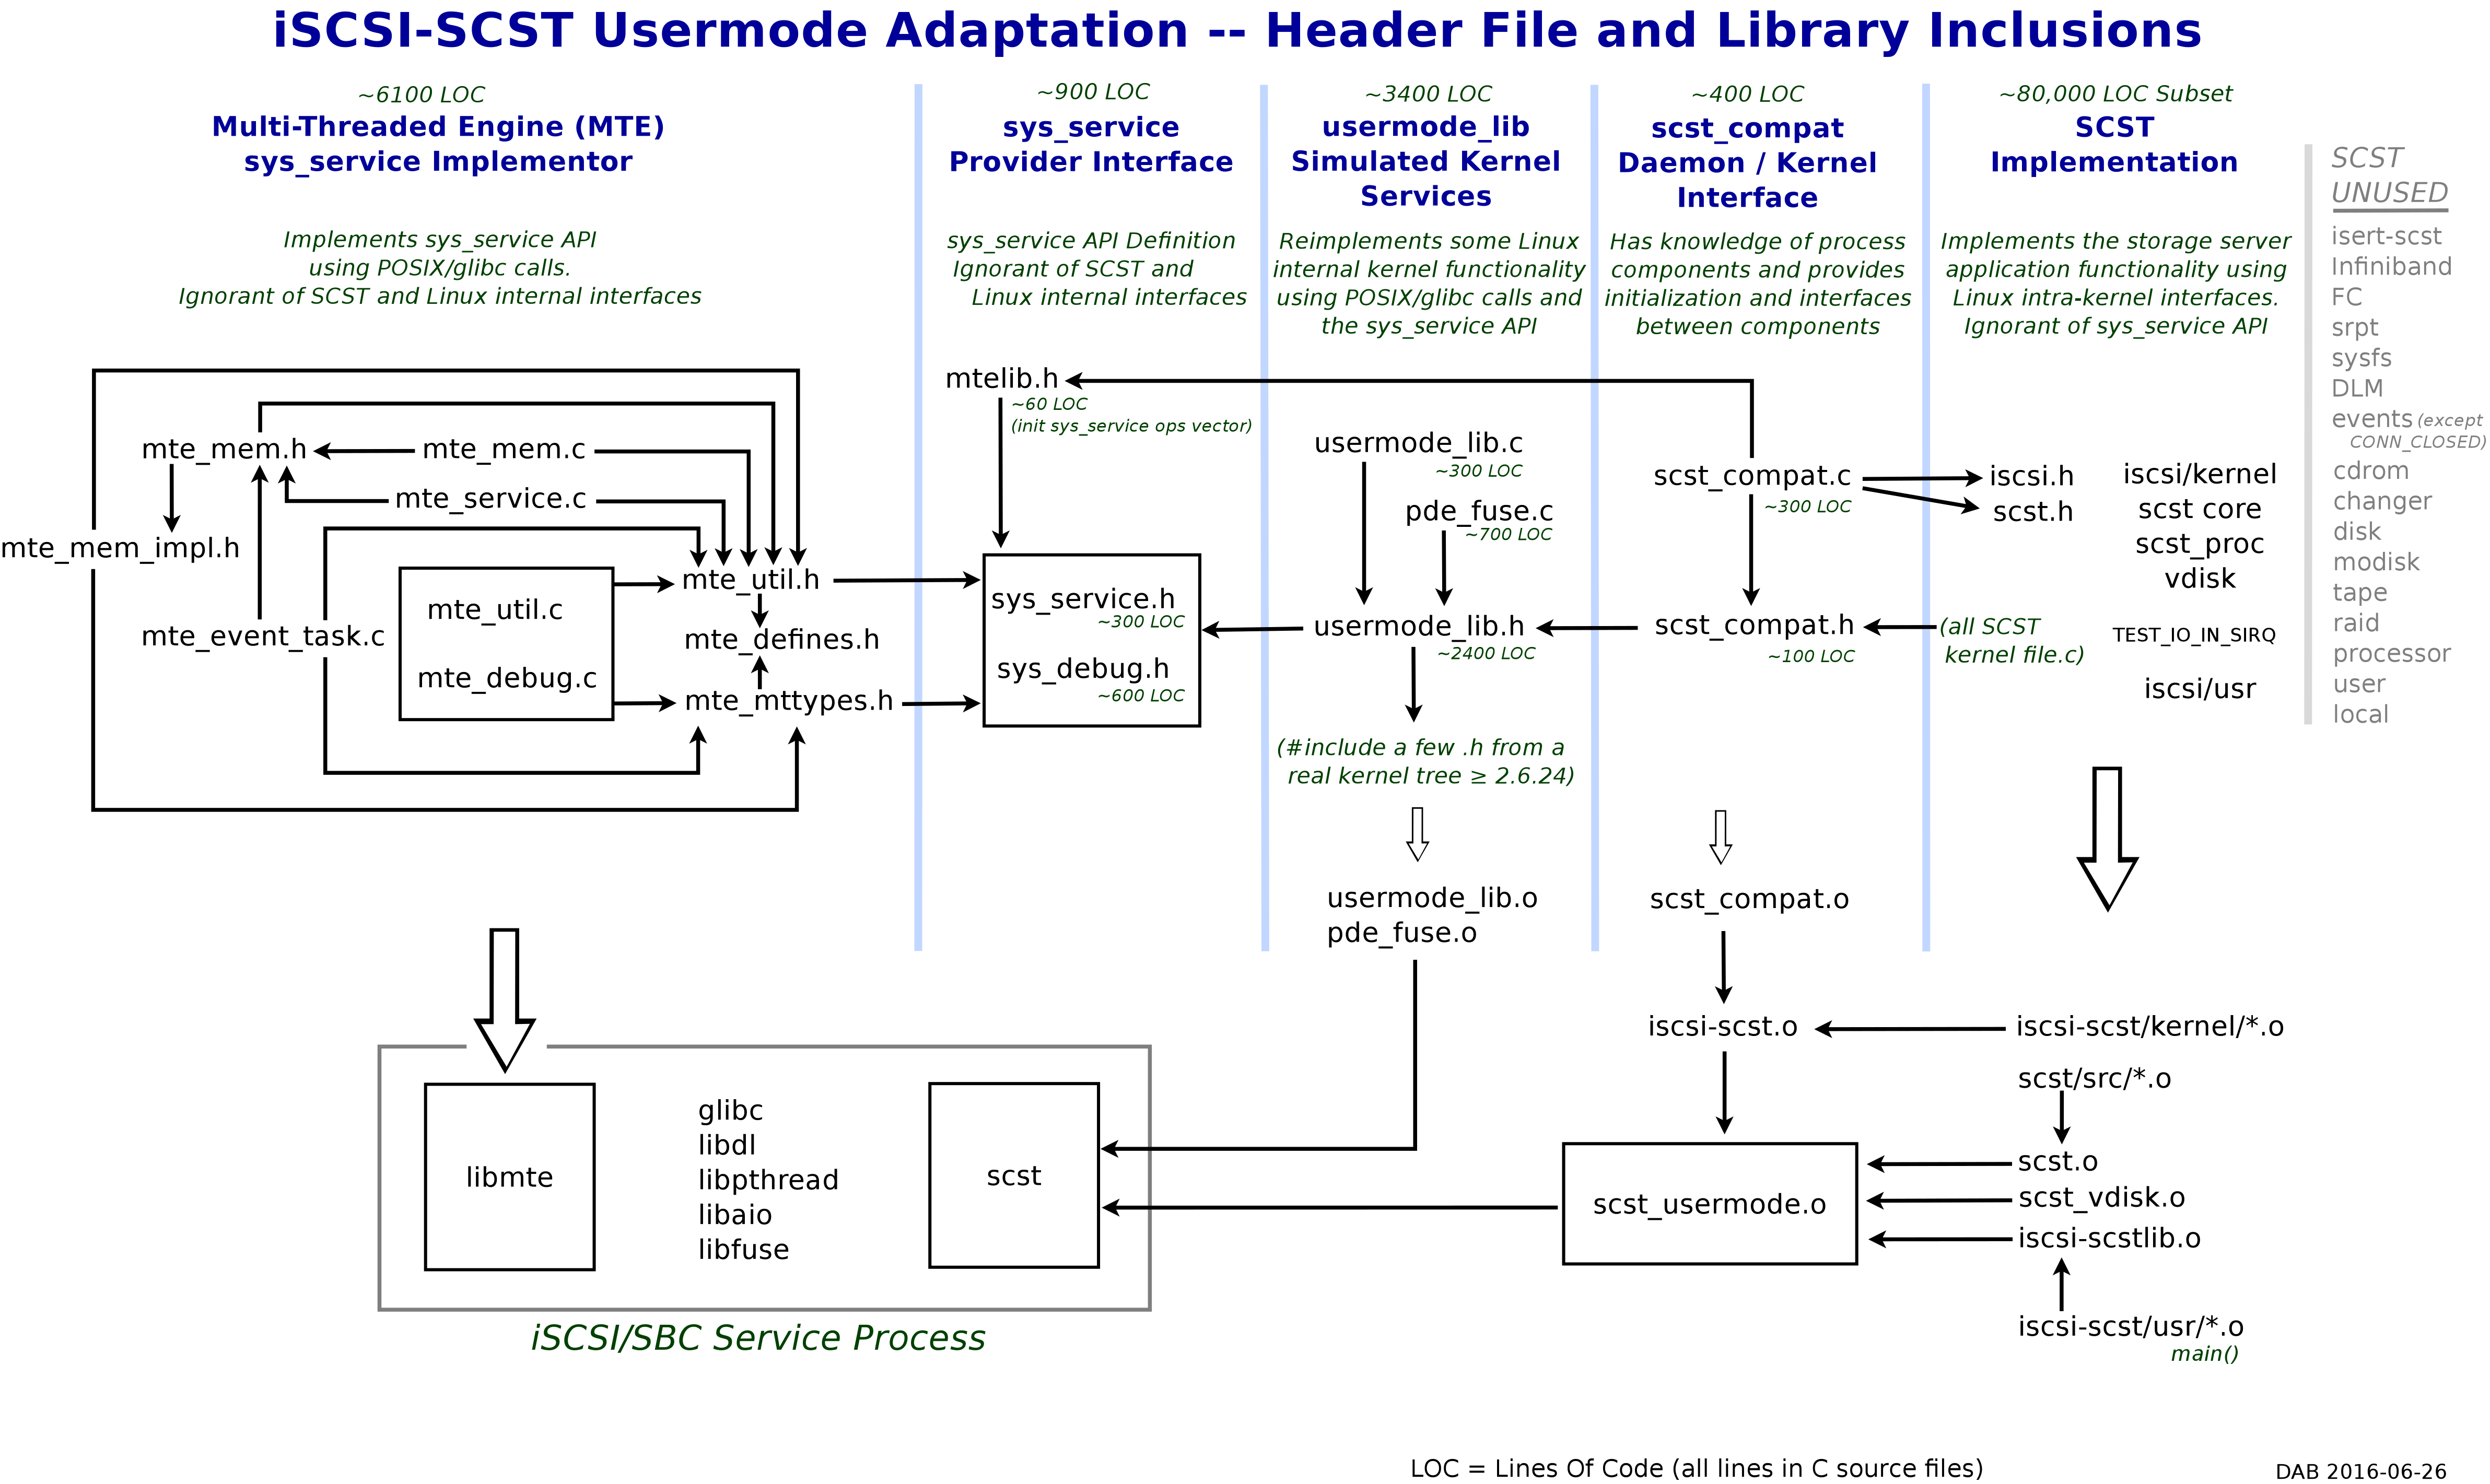 SCST usermode header and library inclusions